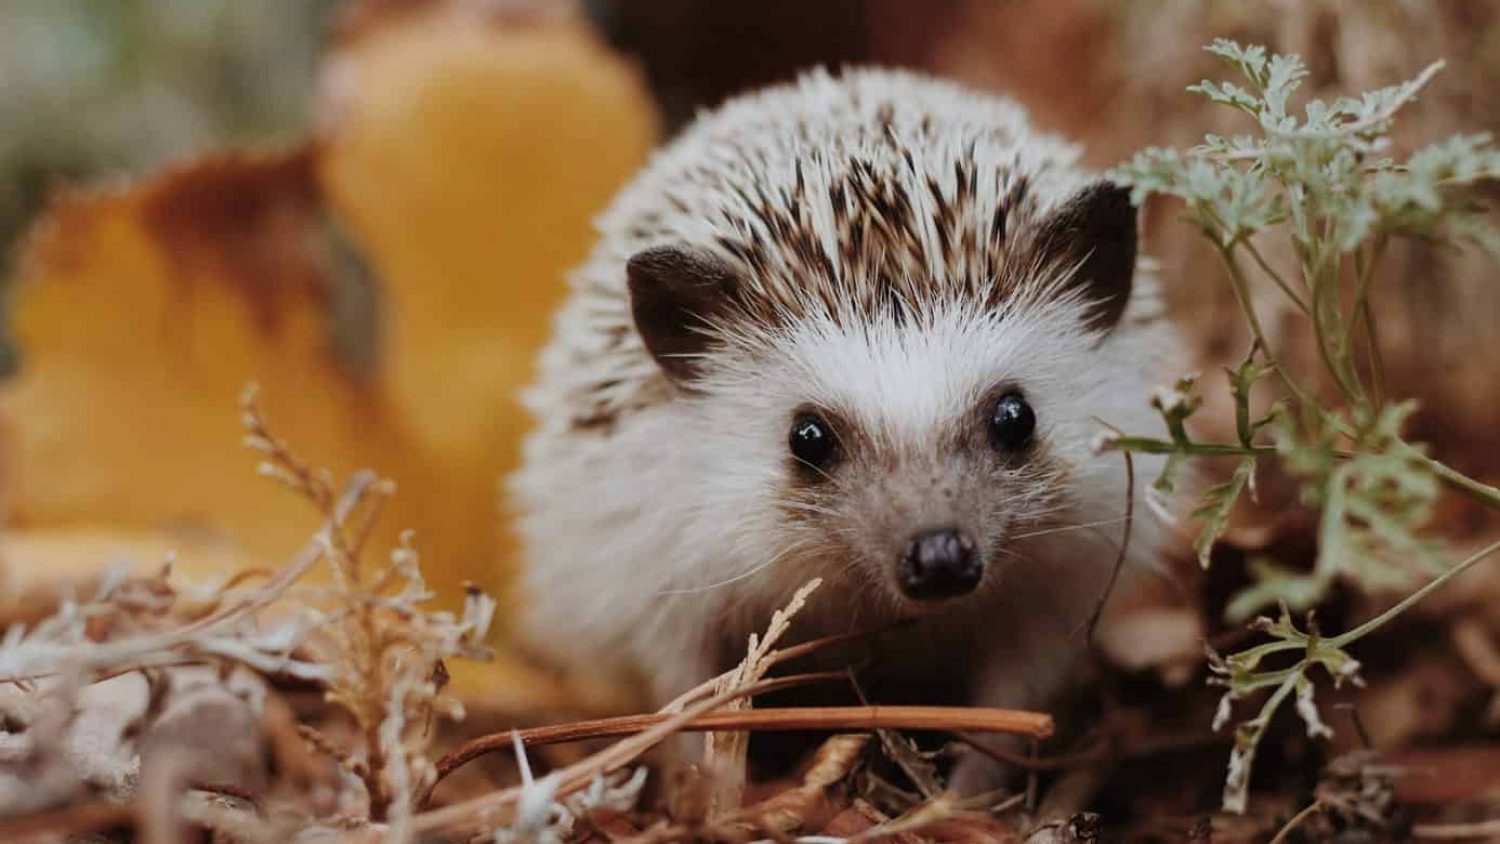 The Ultimate Guide to Hedgehogs – Learn More About This Very Exciting Creature